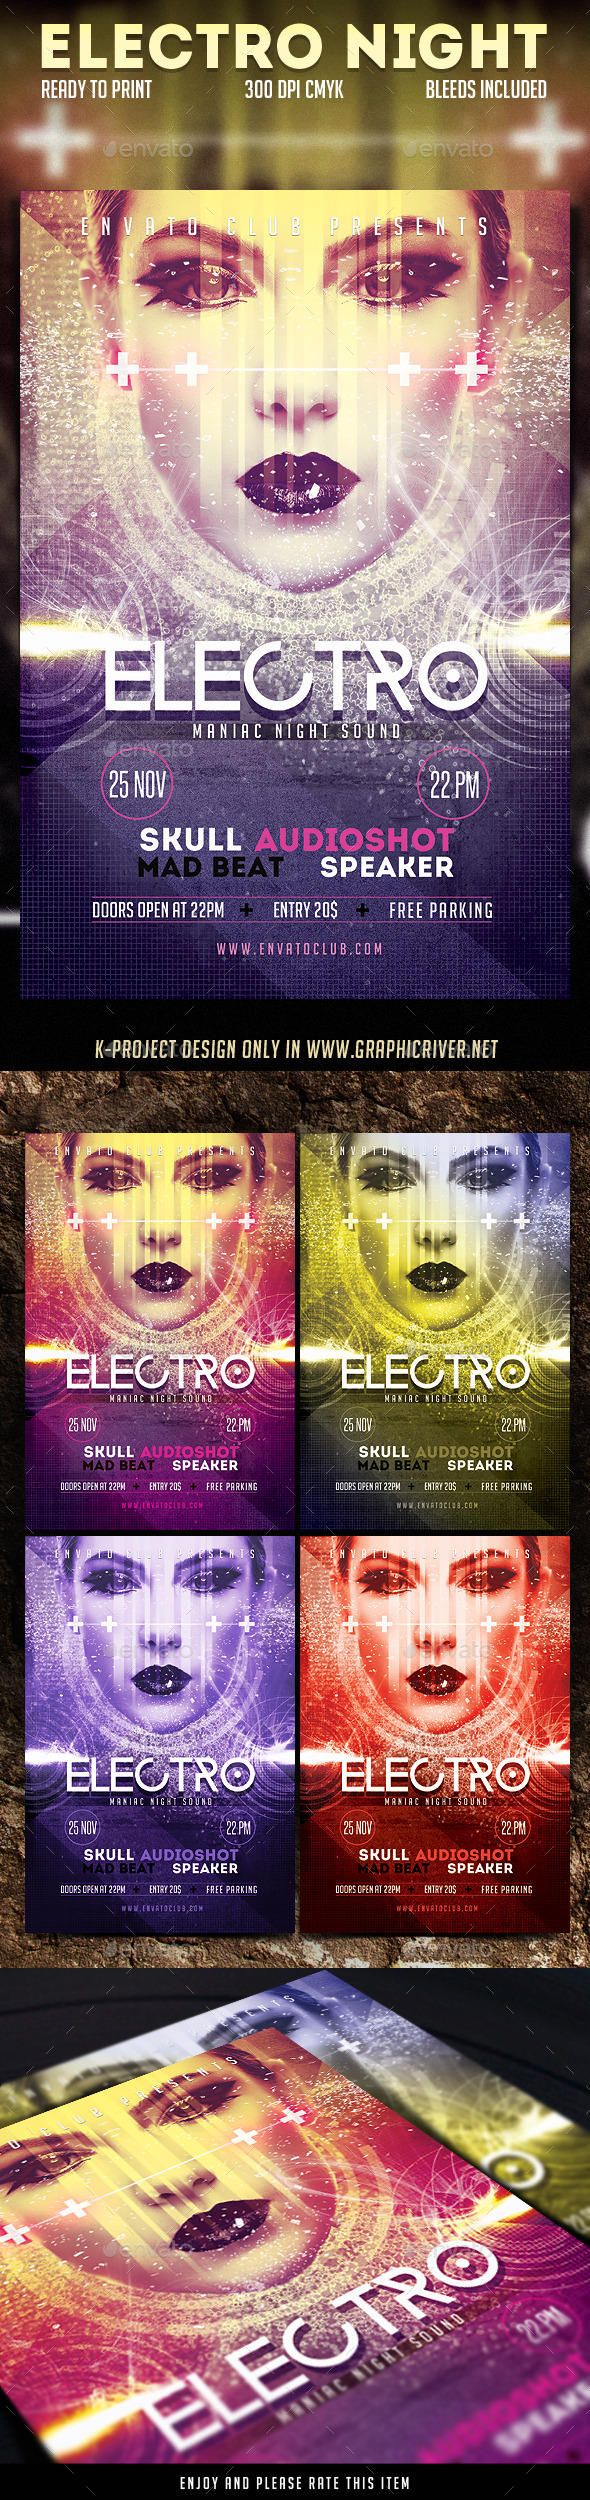 GraphicRiver Electro Night Flyer 9105450